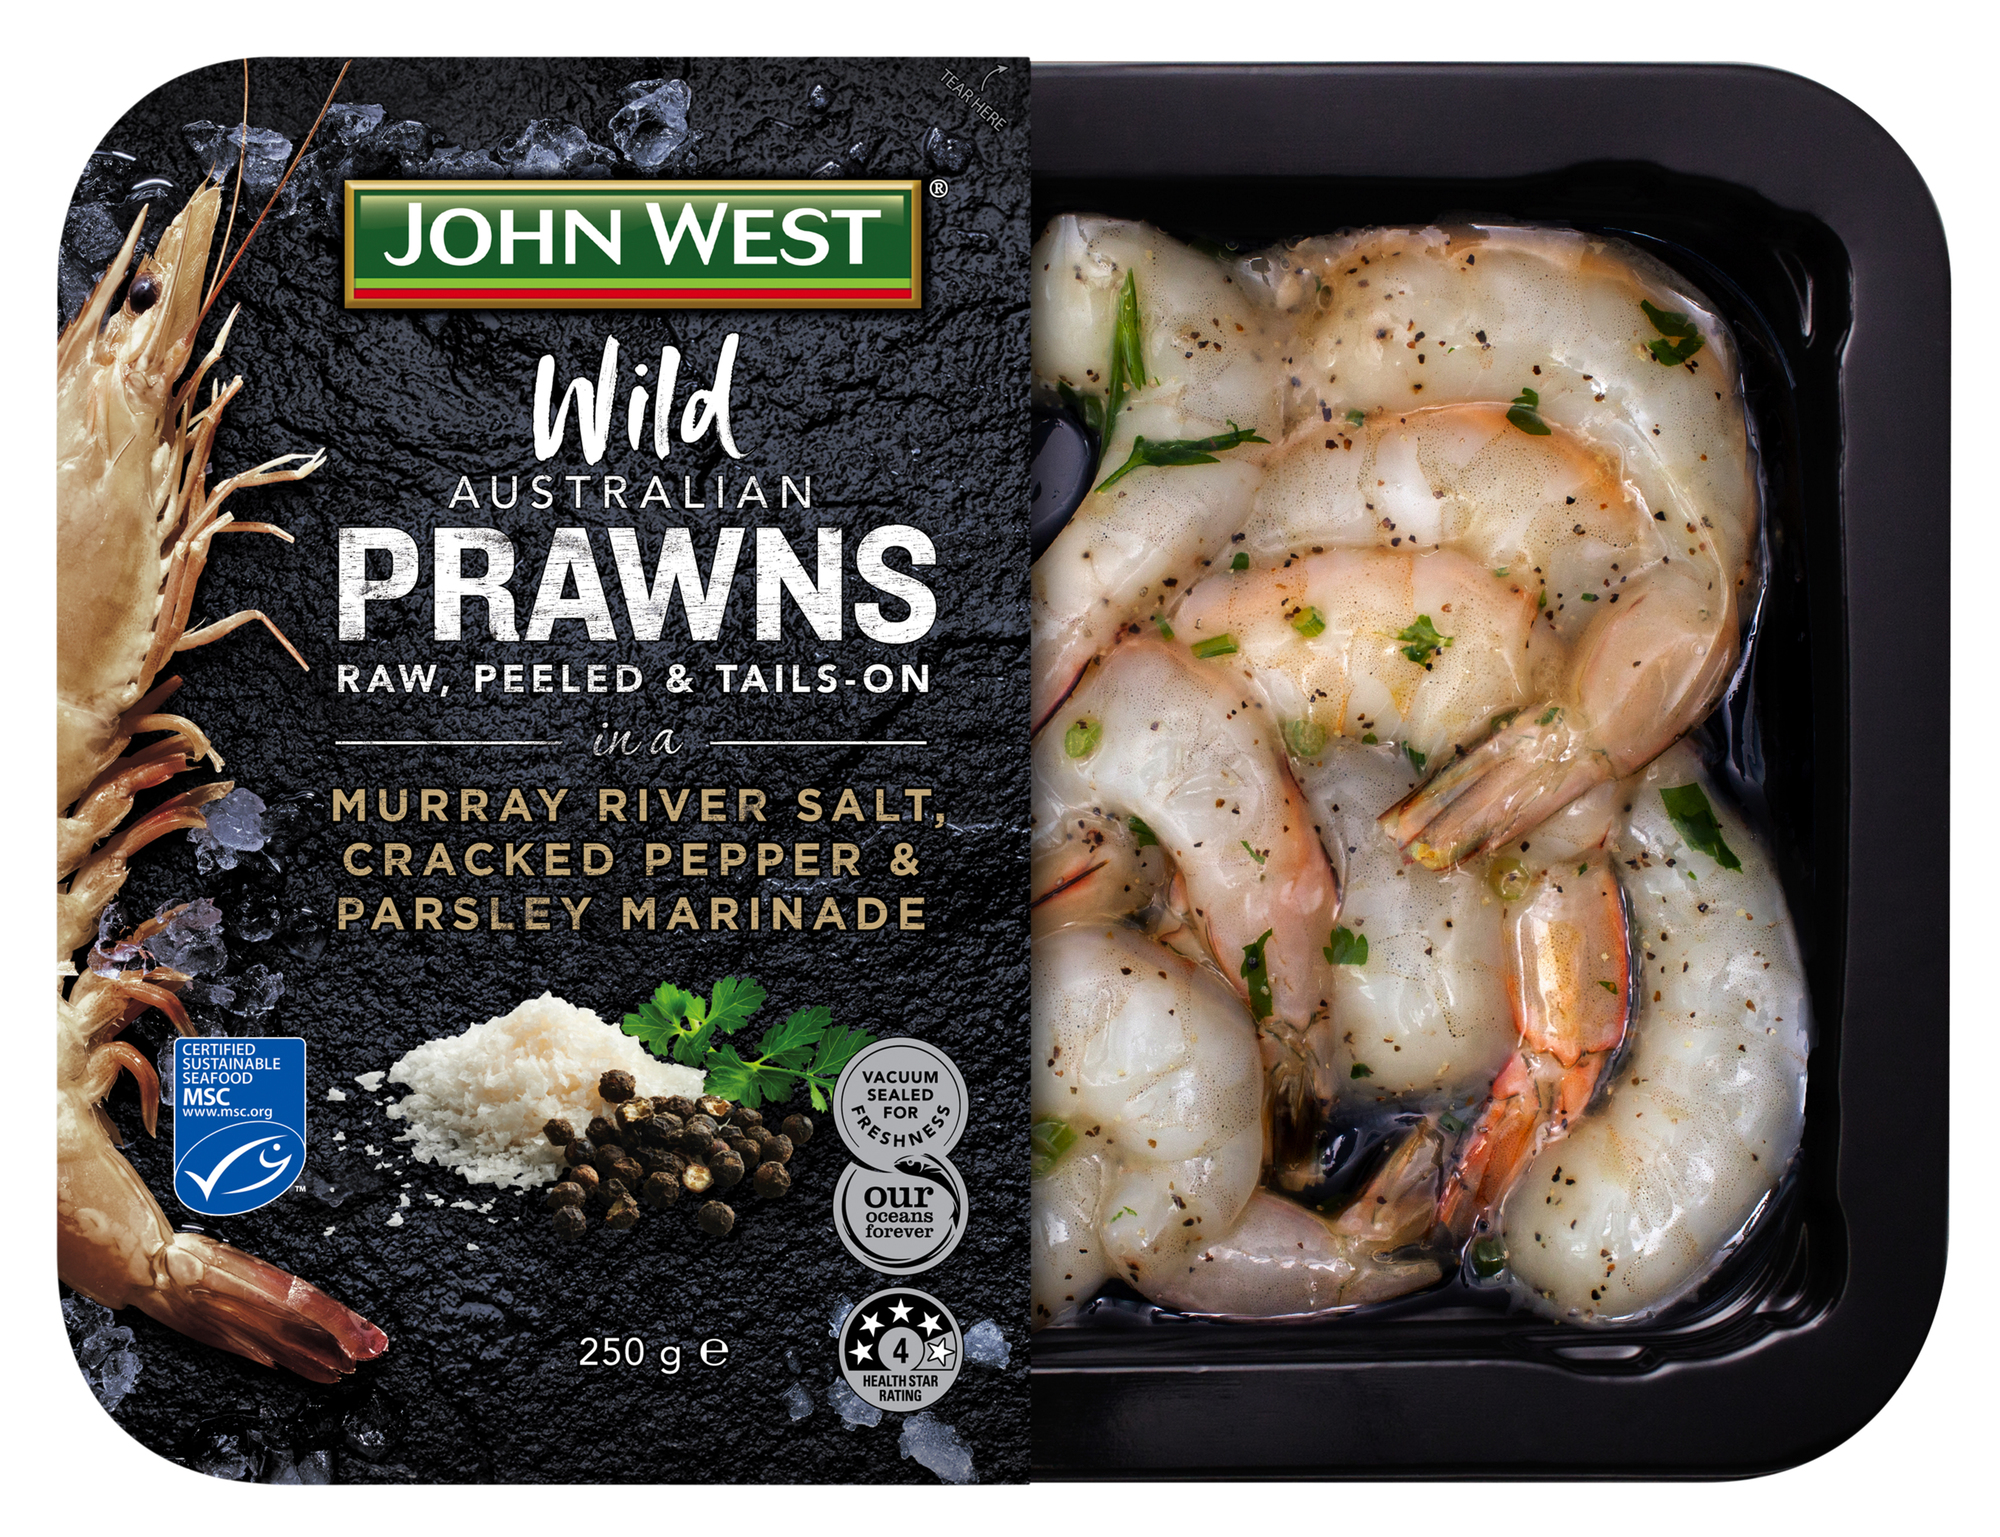 Wild Australian Prawns Salt Cracked Pepper Parsley Marinade